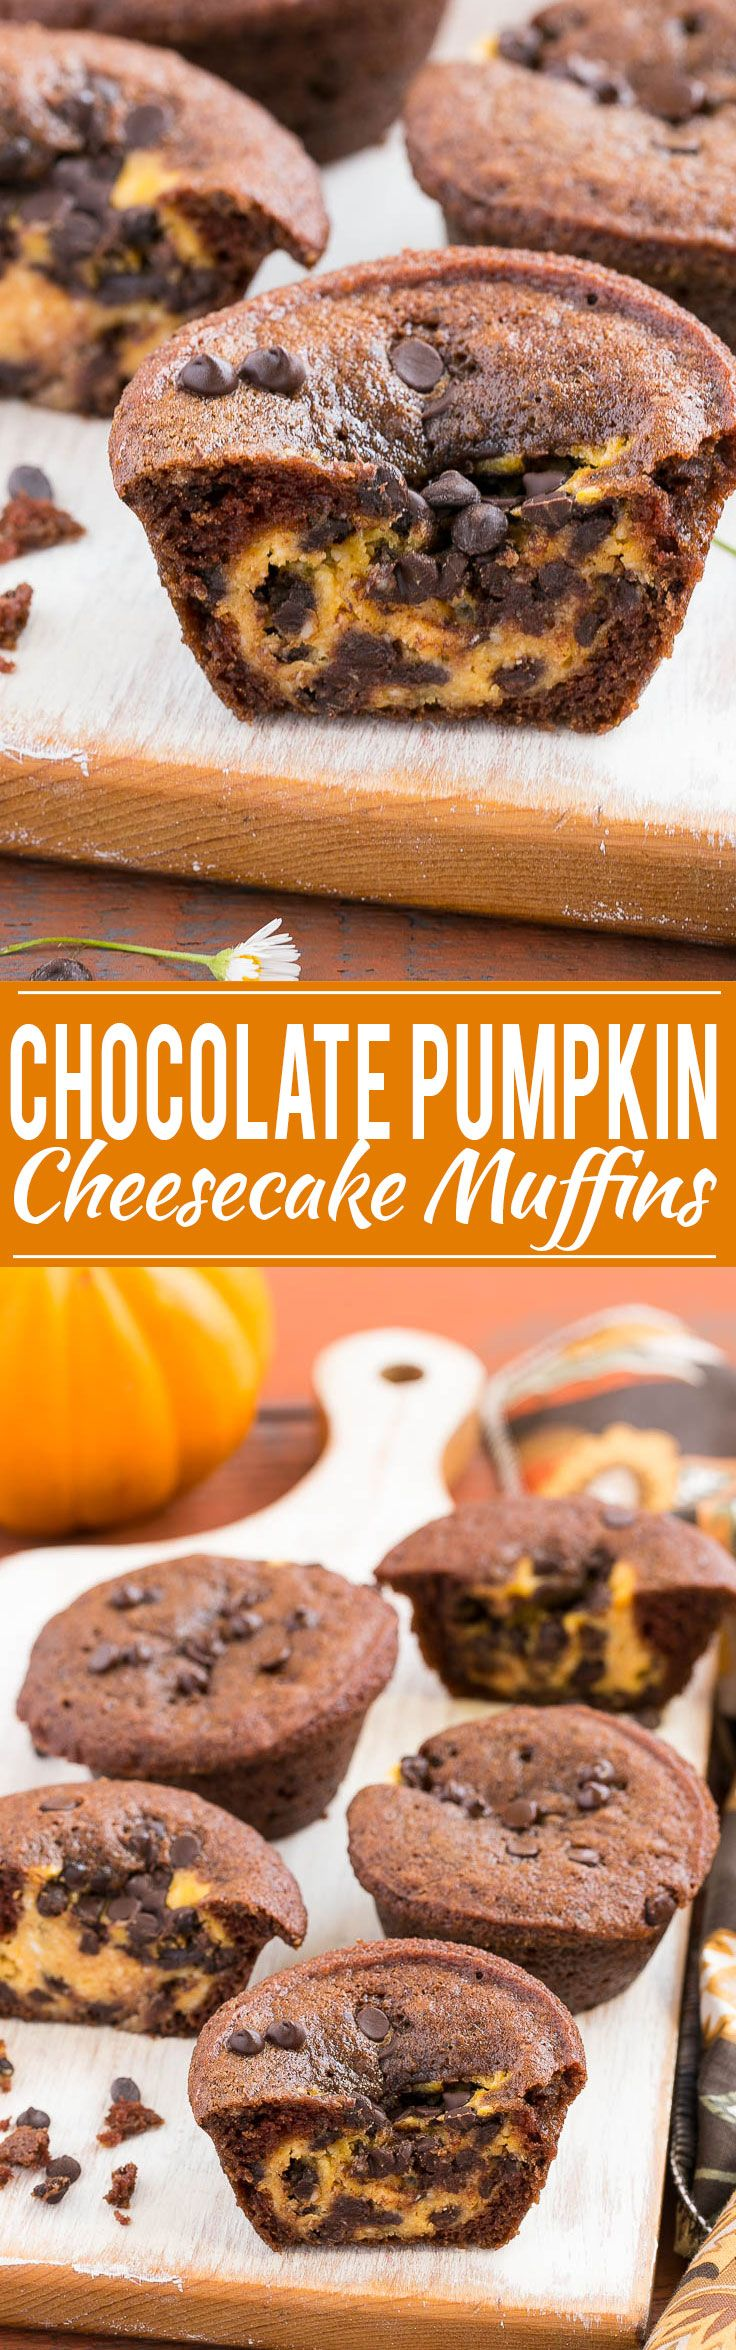 A rich chocolate muffin with a surprise chocolate chip pumpkin cheesecake center.